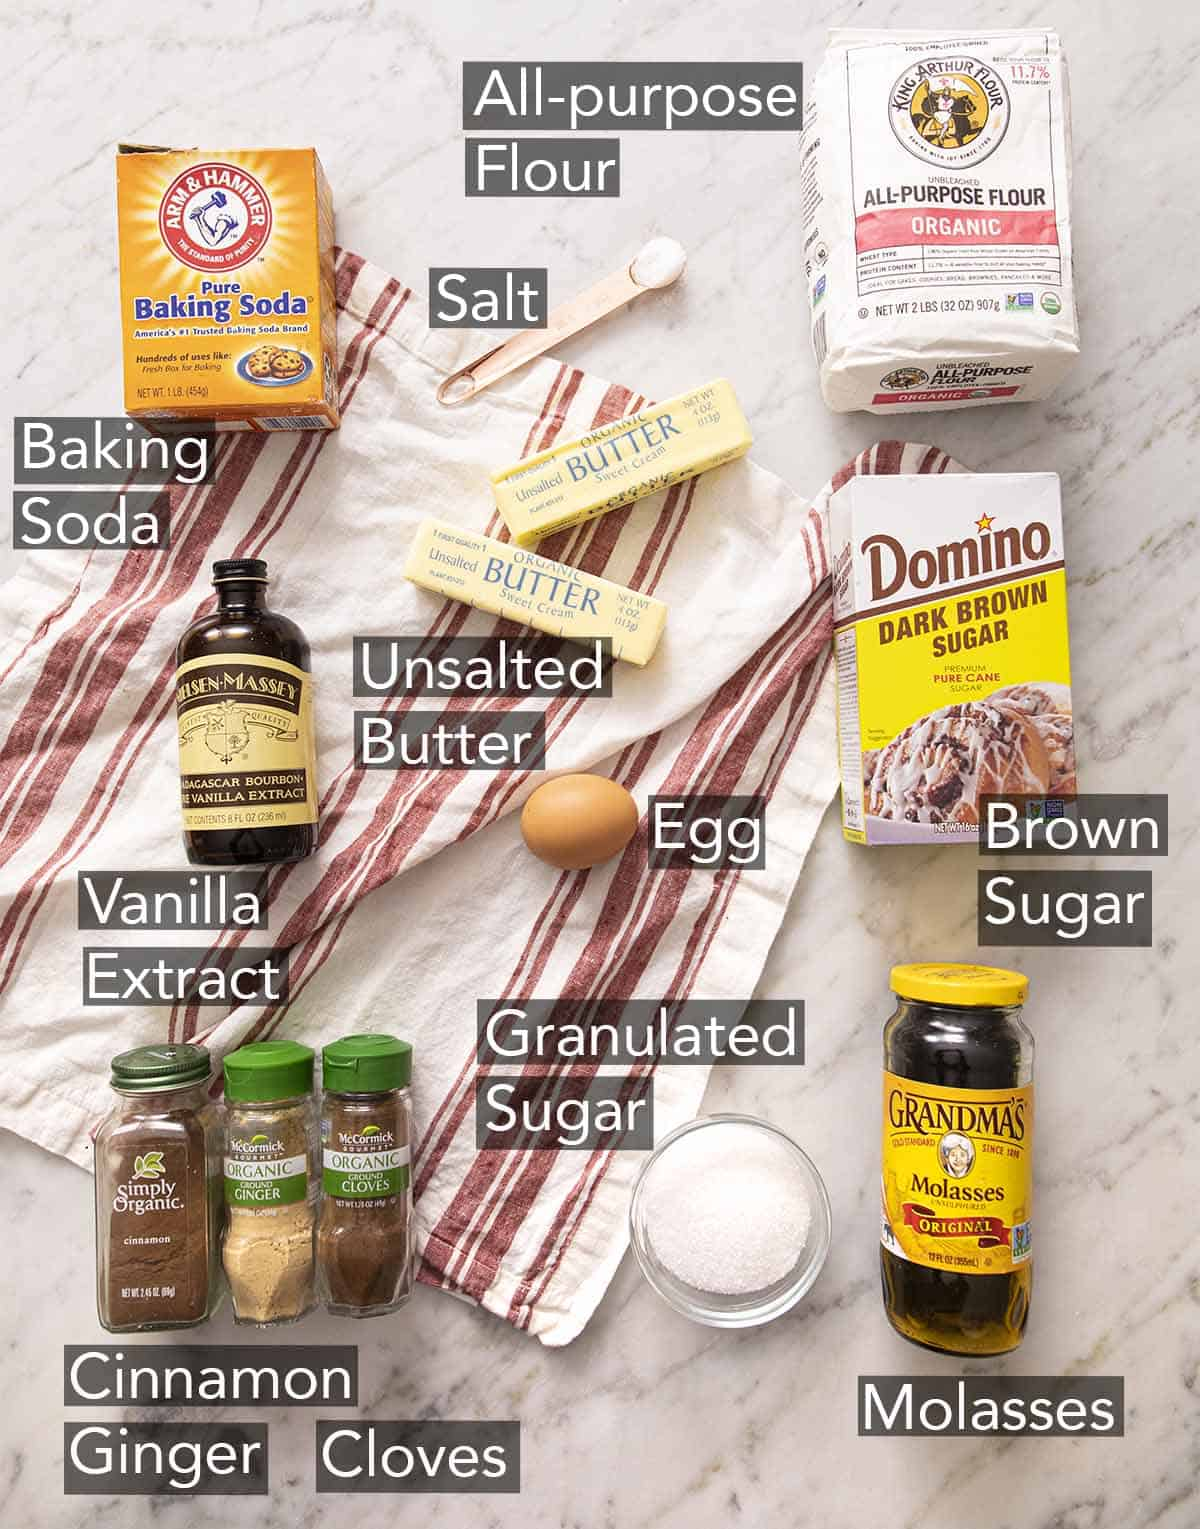 Ingredients to make gingersnaps laying on a striped napkin